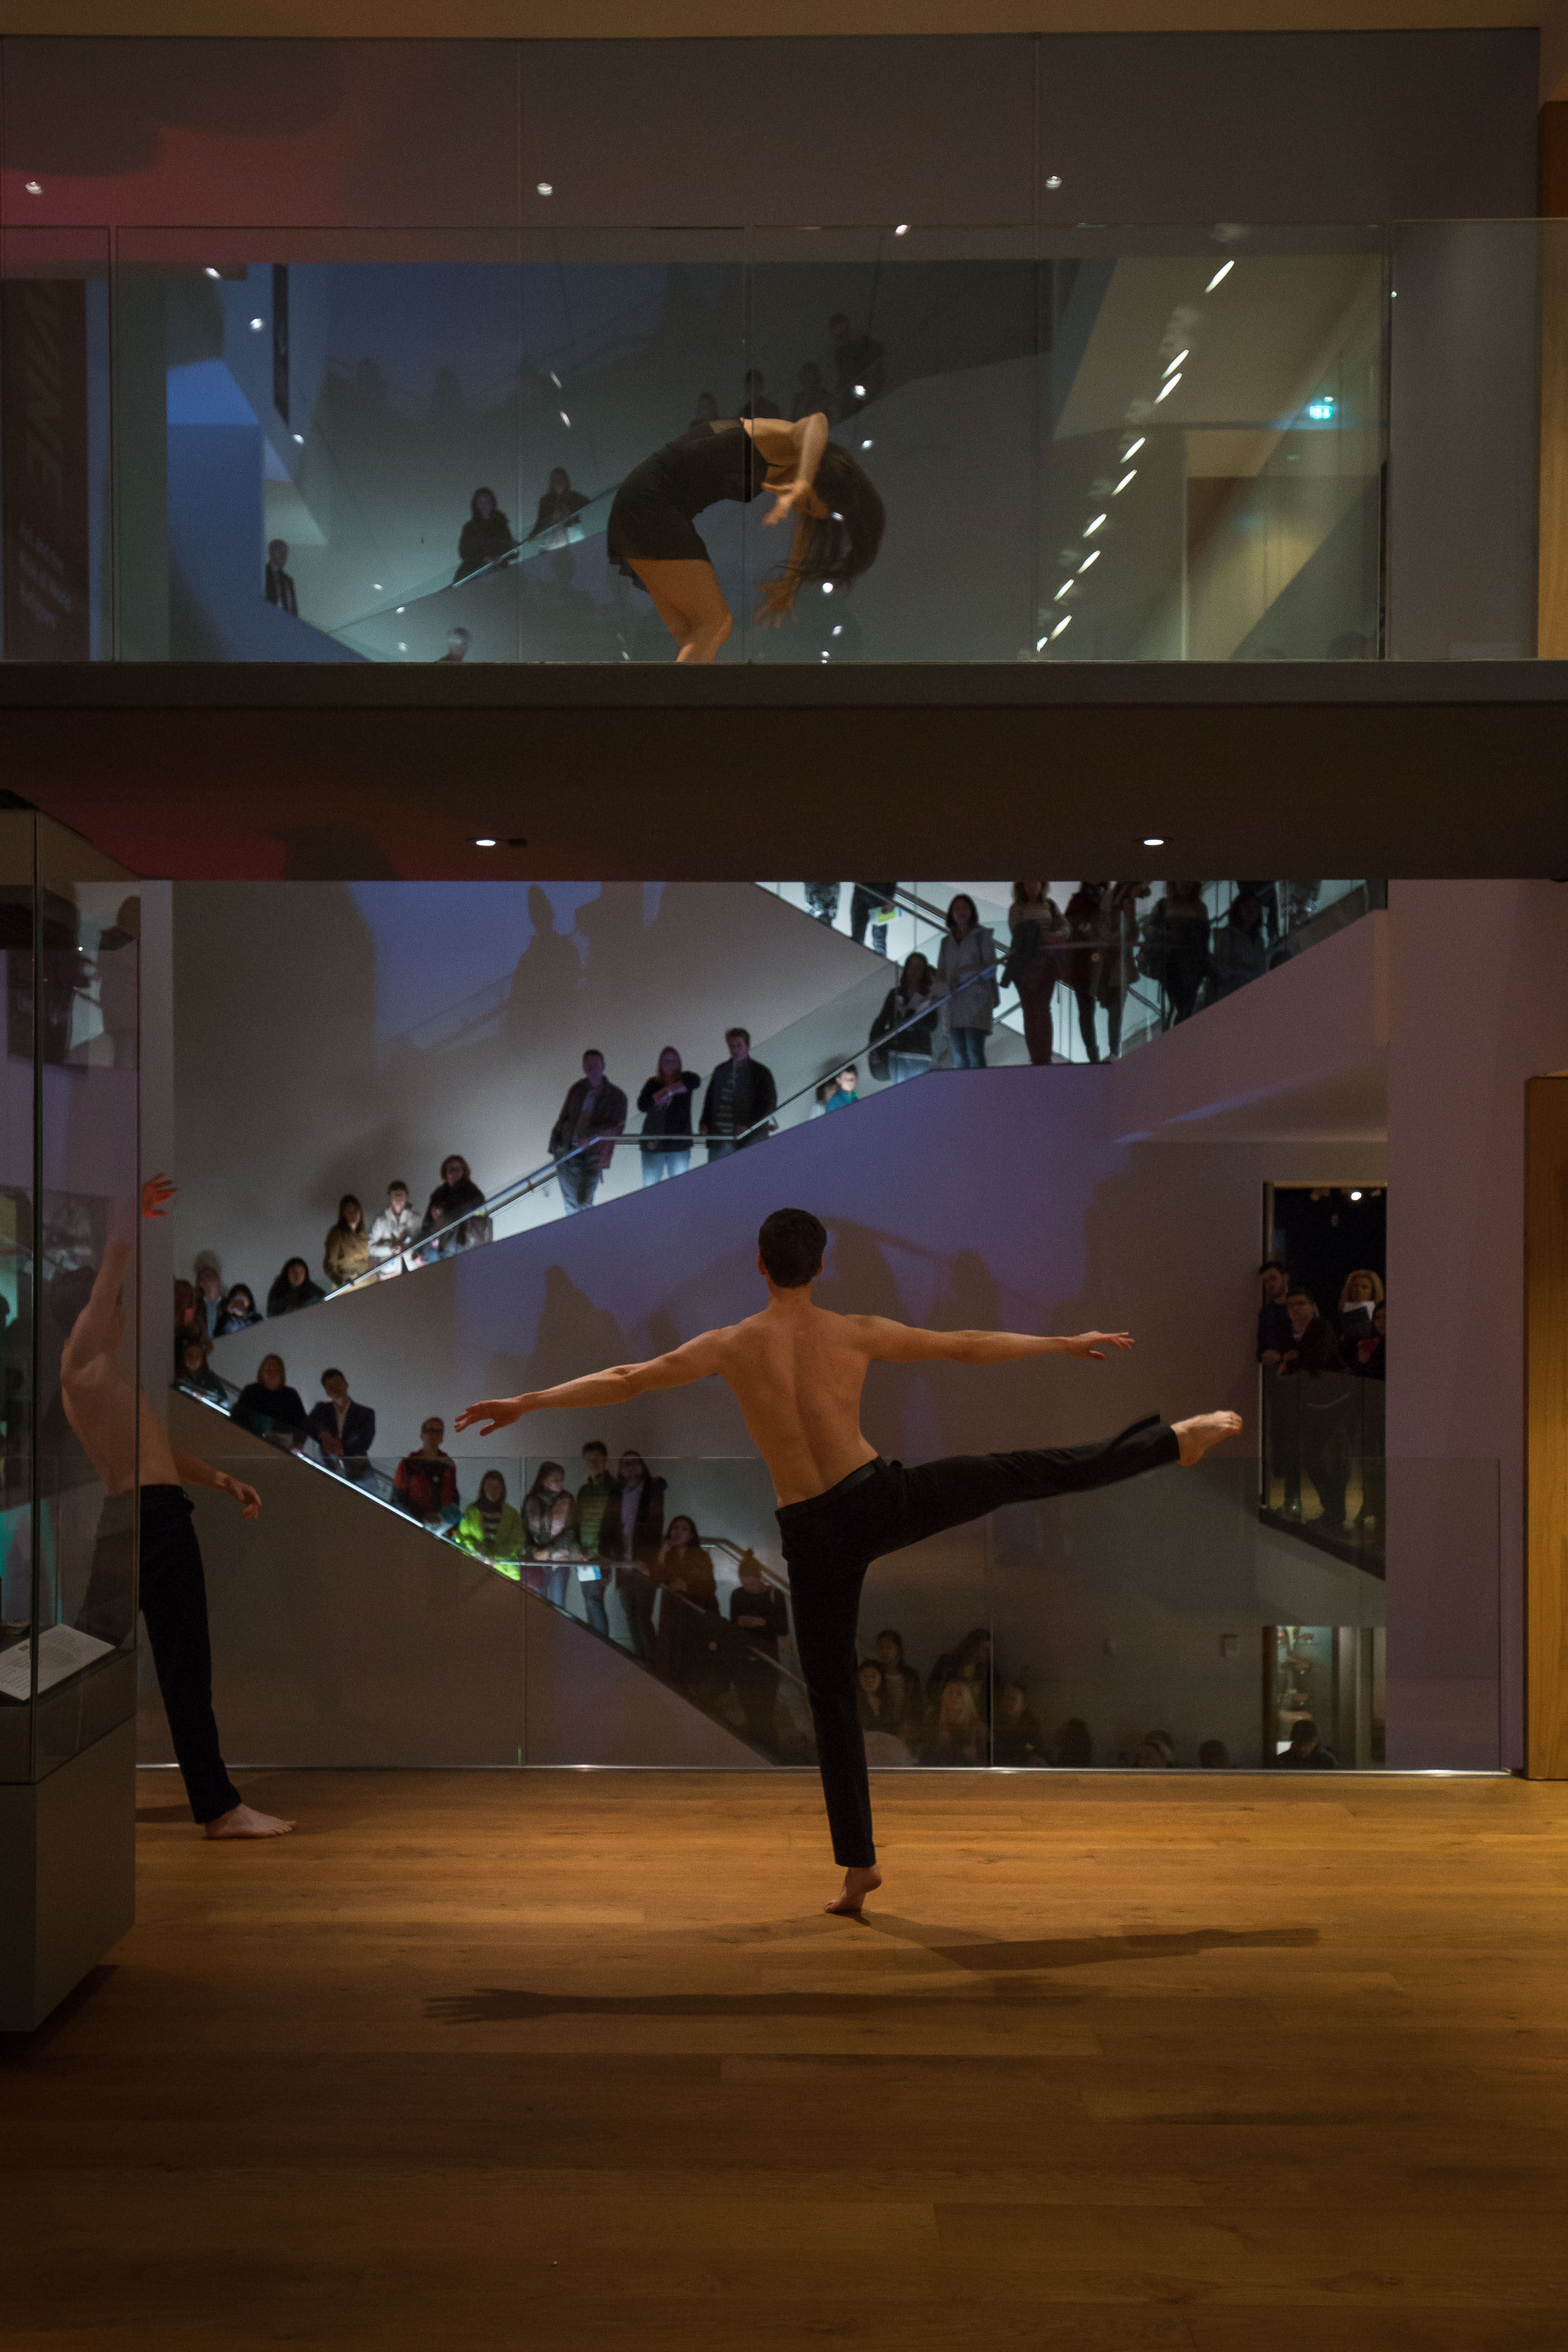 Dance performance at the Ashmolean Museum